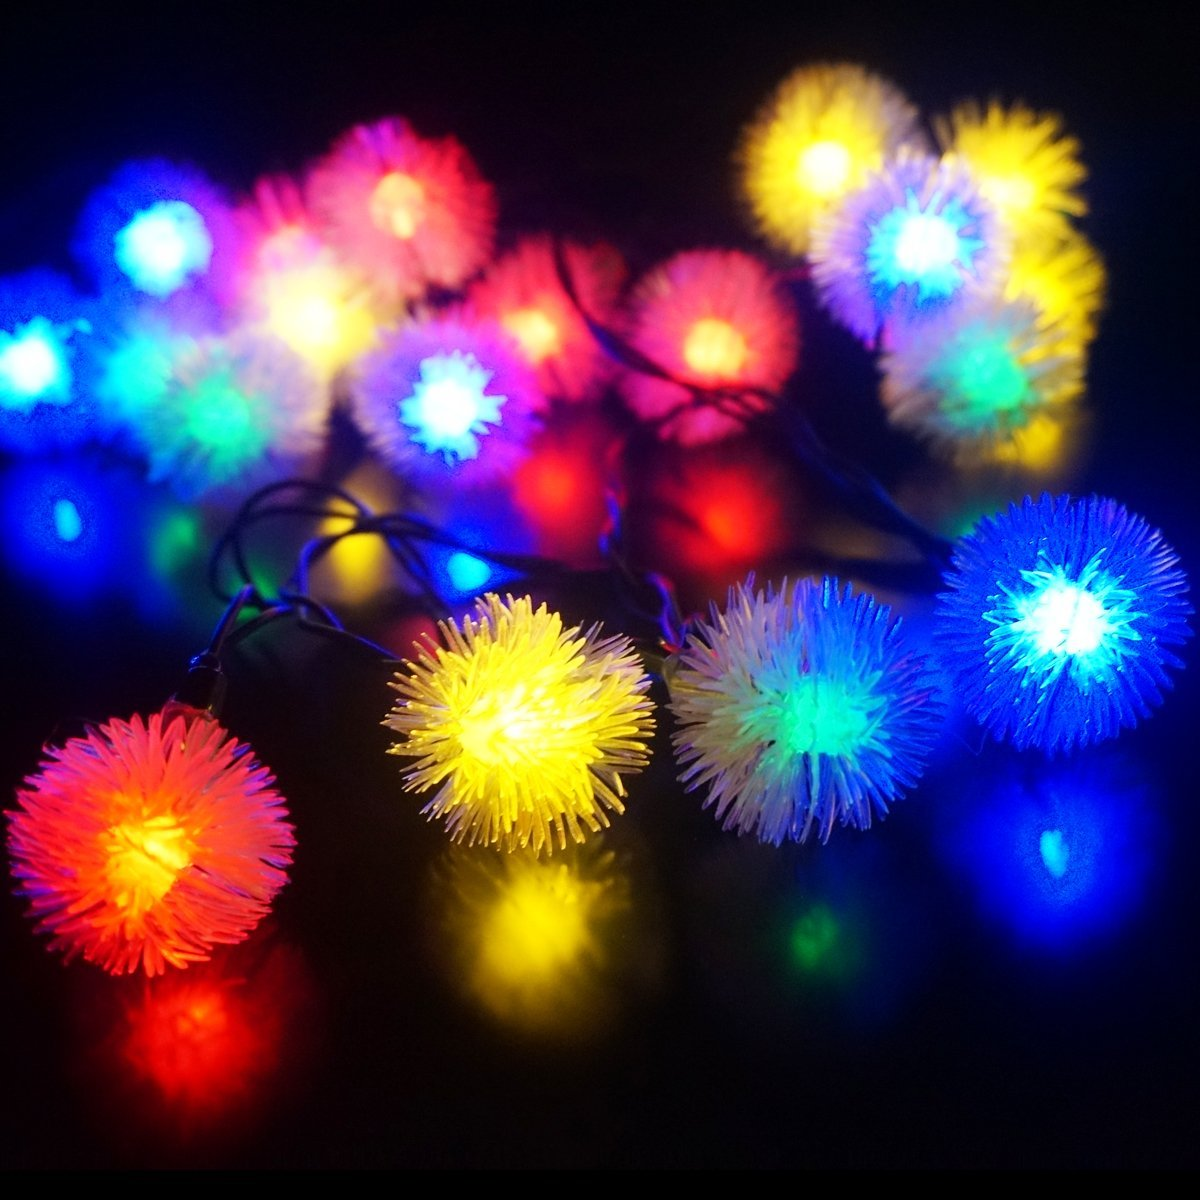 Qedertek LED Solar Lights Fairy Chuzzle Ball 23ft 50 LED Decorative Lighting for Home,Lawn,Garden,Wedding,Patio,Party,and Holiday Decorations( Multicolor)